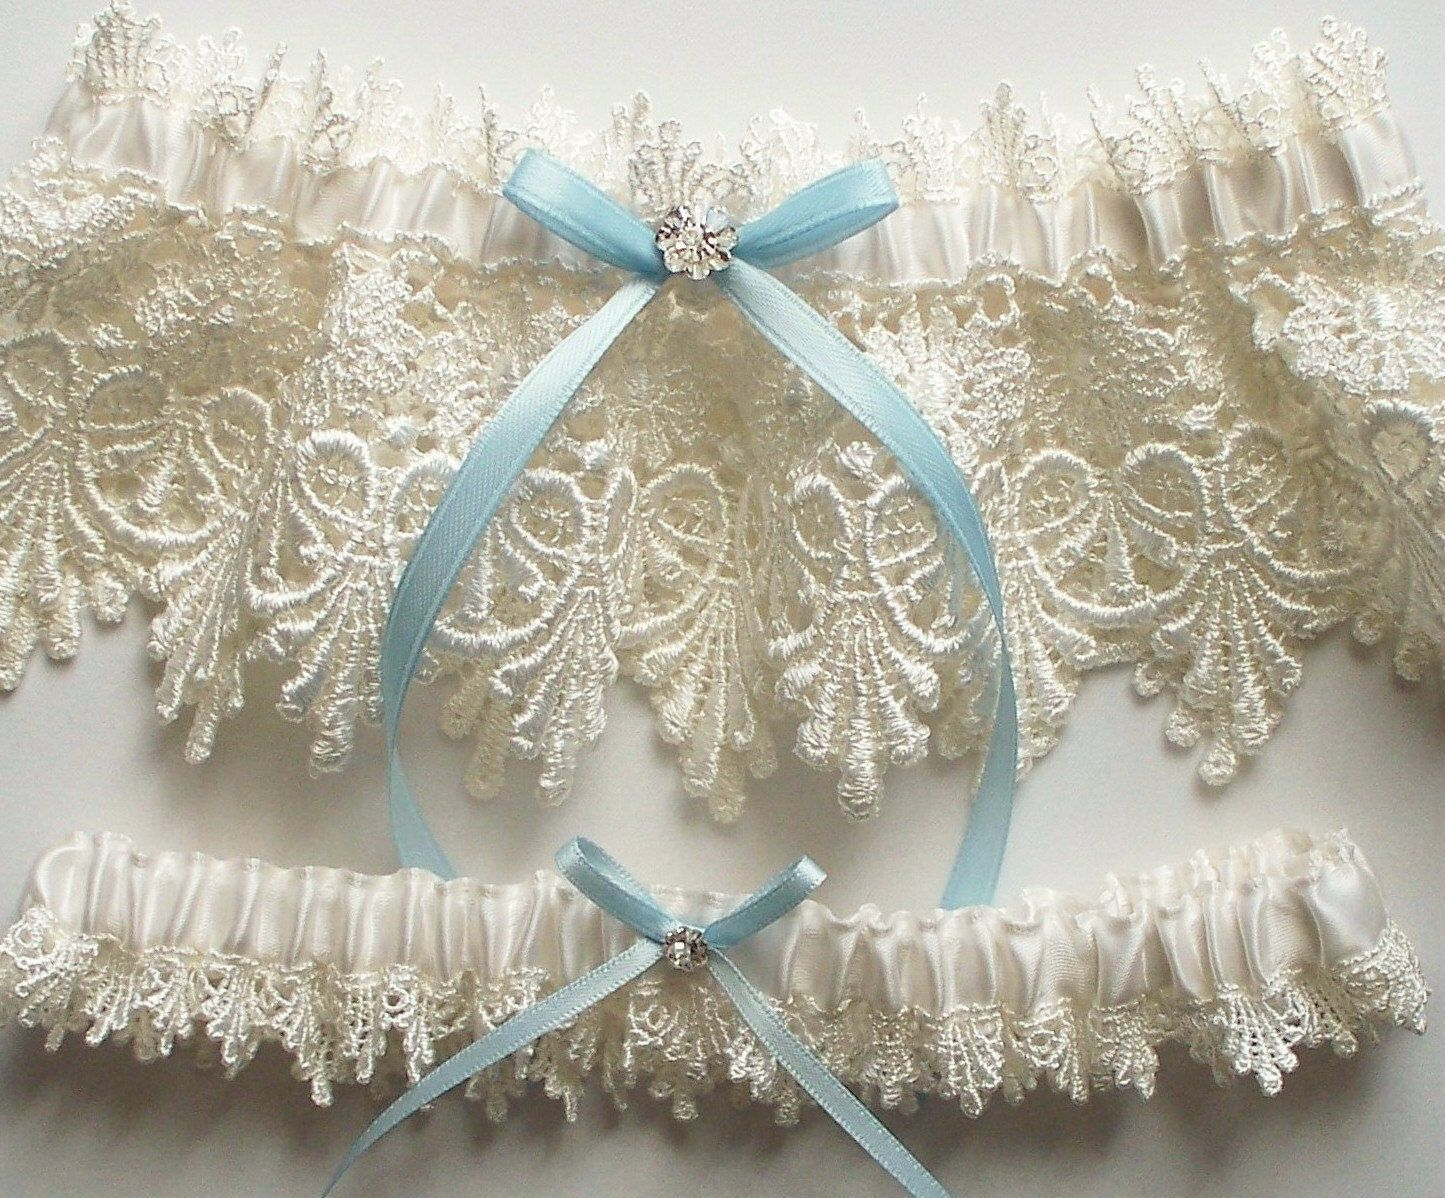 Lace Garter Wedding Set With Blue Satin Ribbon Bow And Swarovski Crystal Centering The Alicia